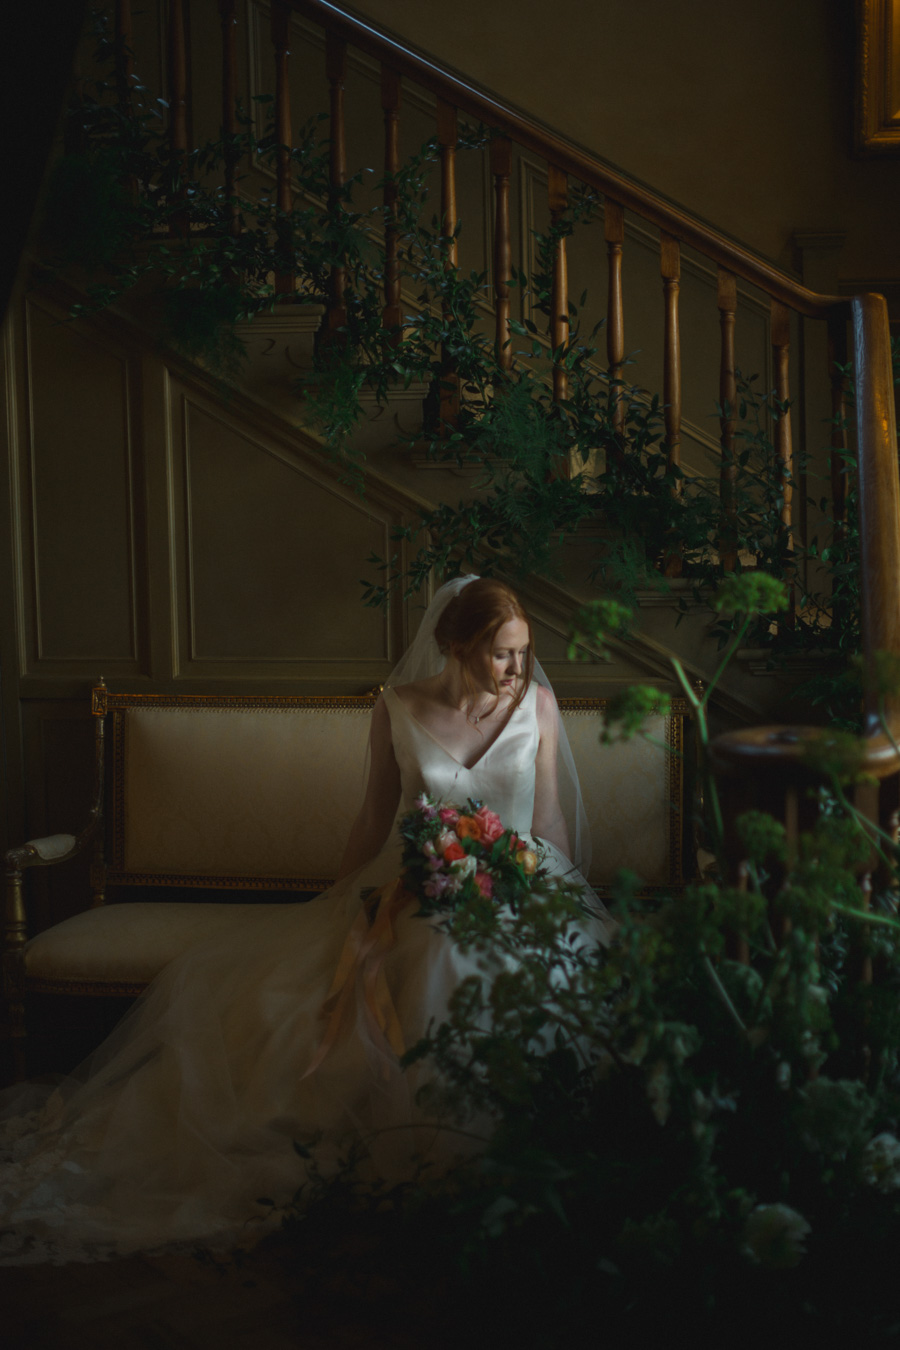 Divine wedding styling with English country garden florals at Pauntley Court, photo credit Red Maple Photography (6)